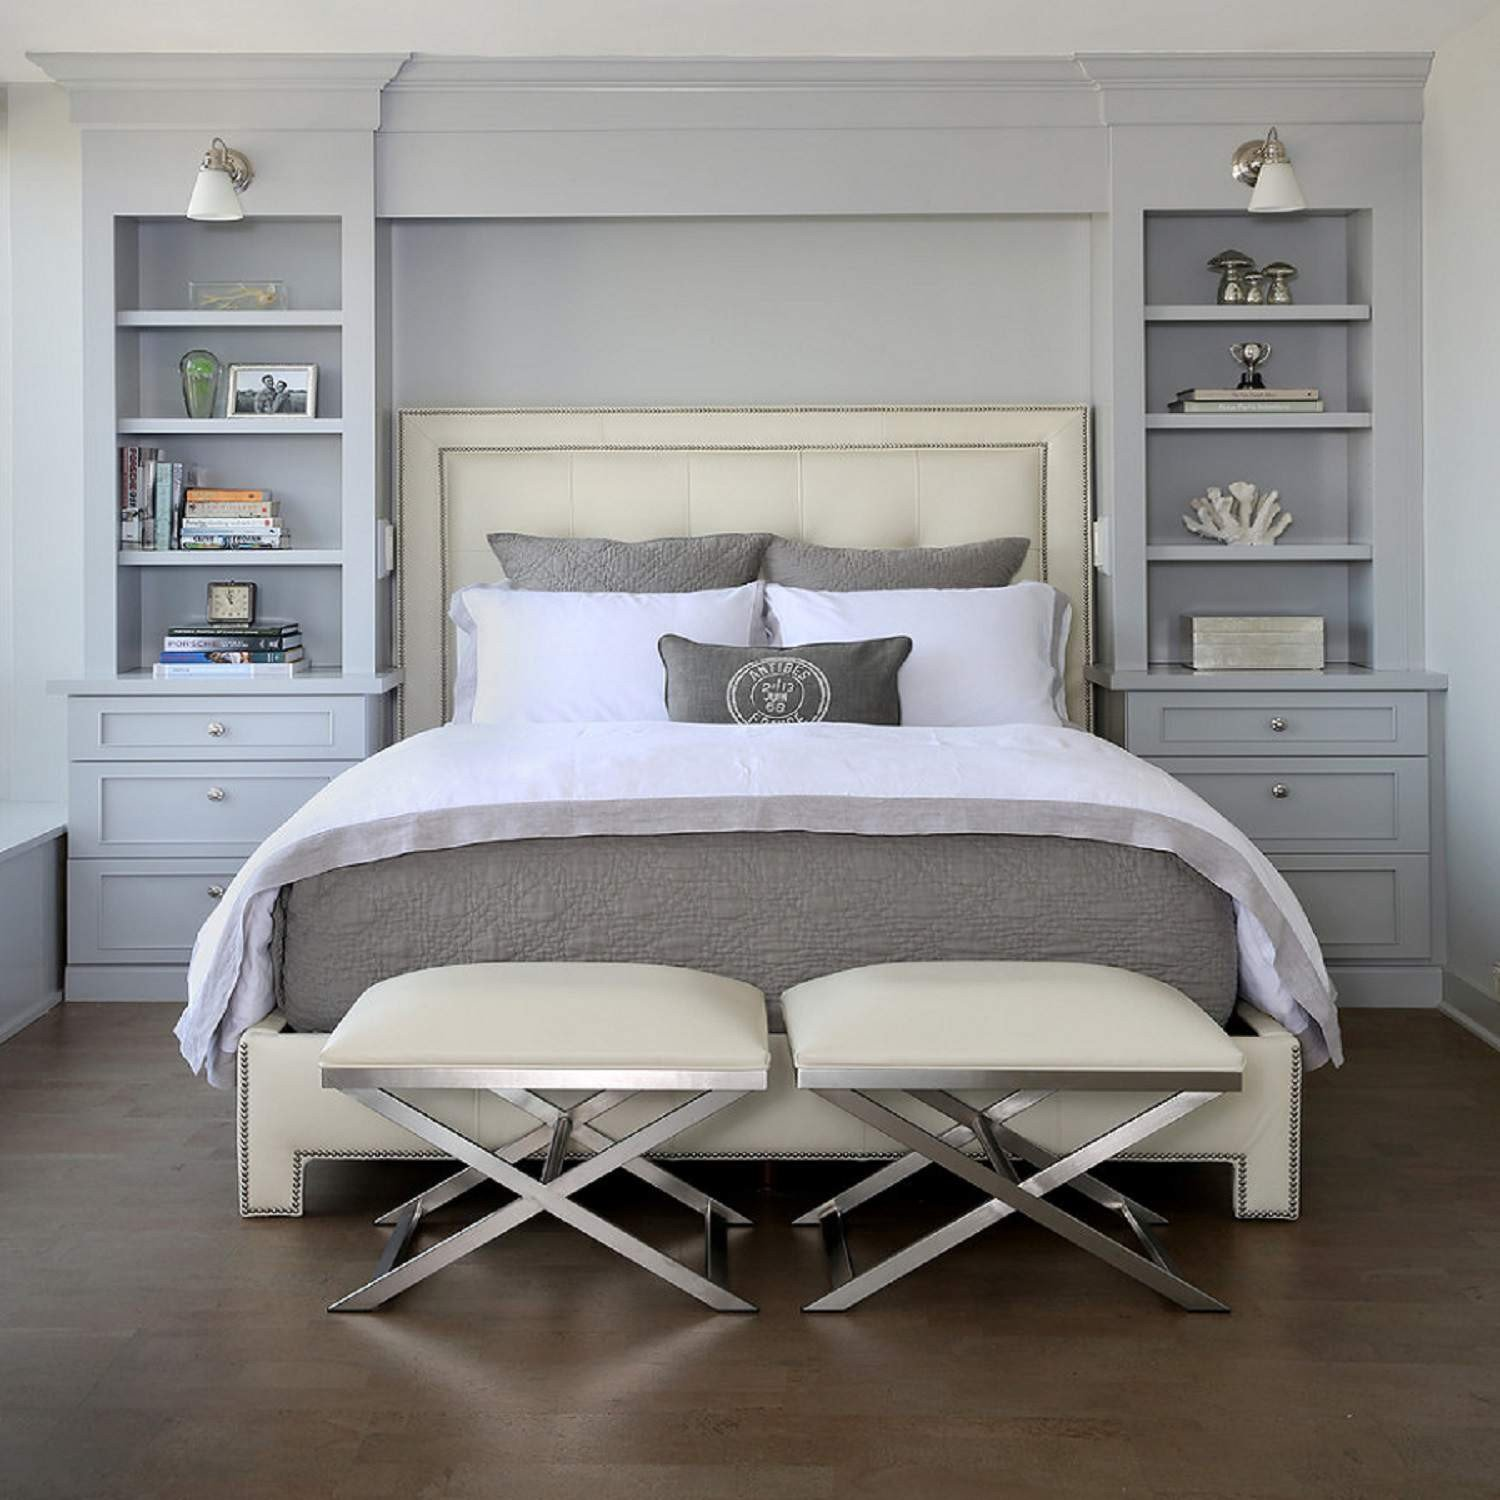 Space Saving Bedroom Ideas New Small Master Bedroom Design Ideas Tips and S